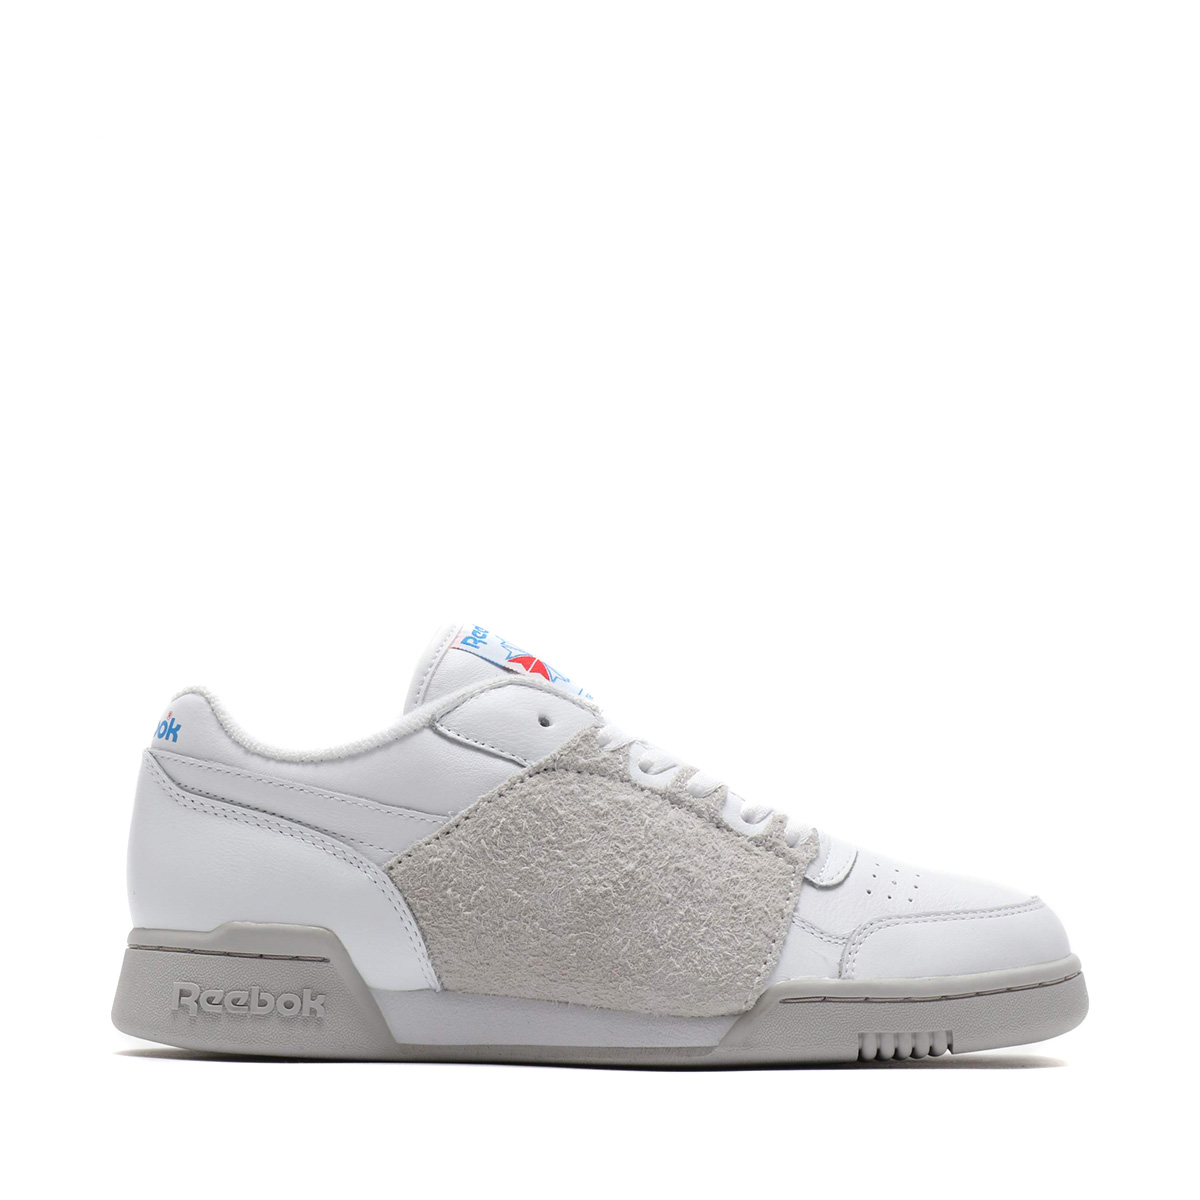 3dae381850e Reebok WORKOUT PLUS NEPENTHES (WHT STEEL BLUE) (Reebok practice game plus  nepenthe)